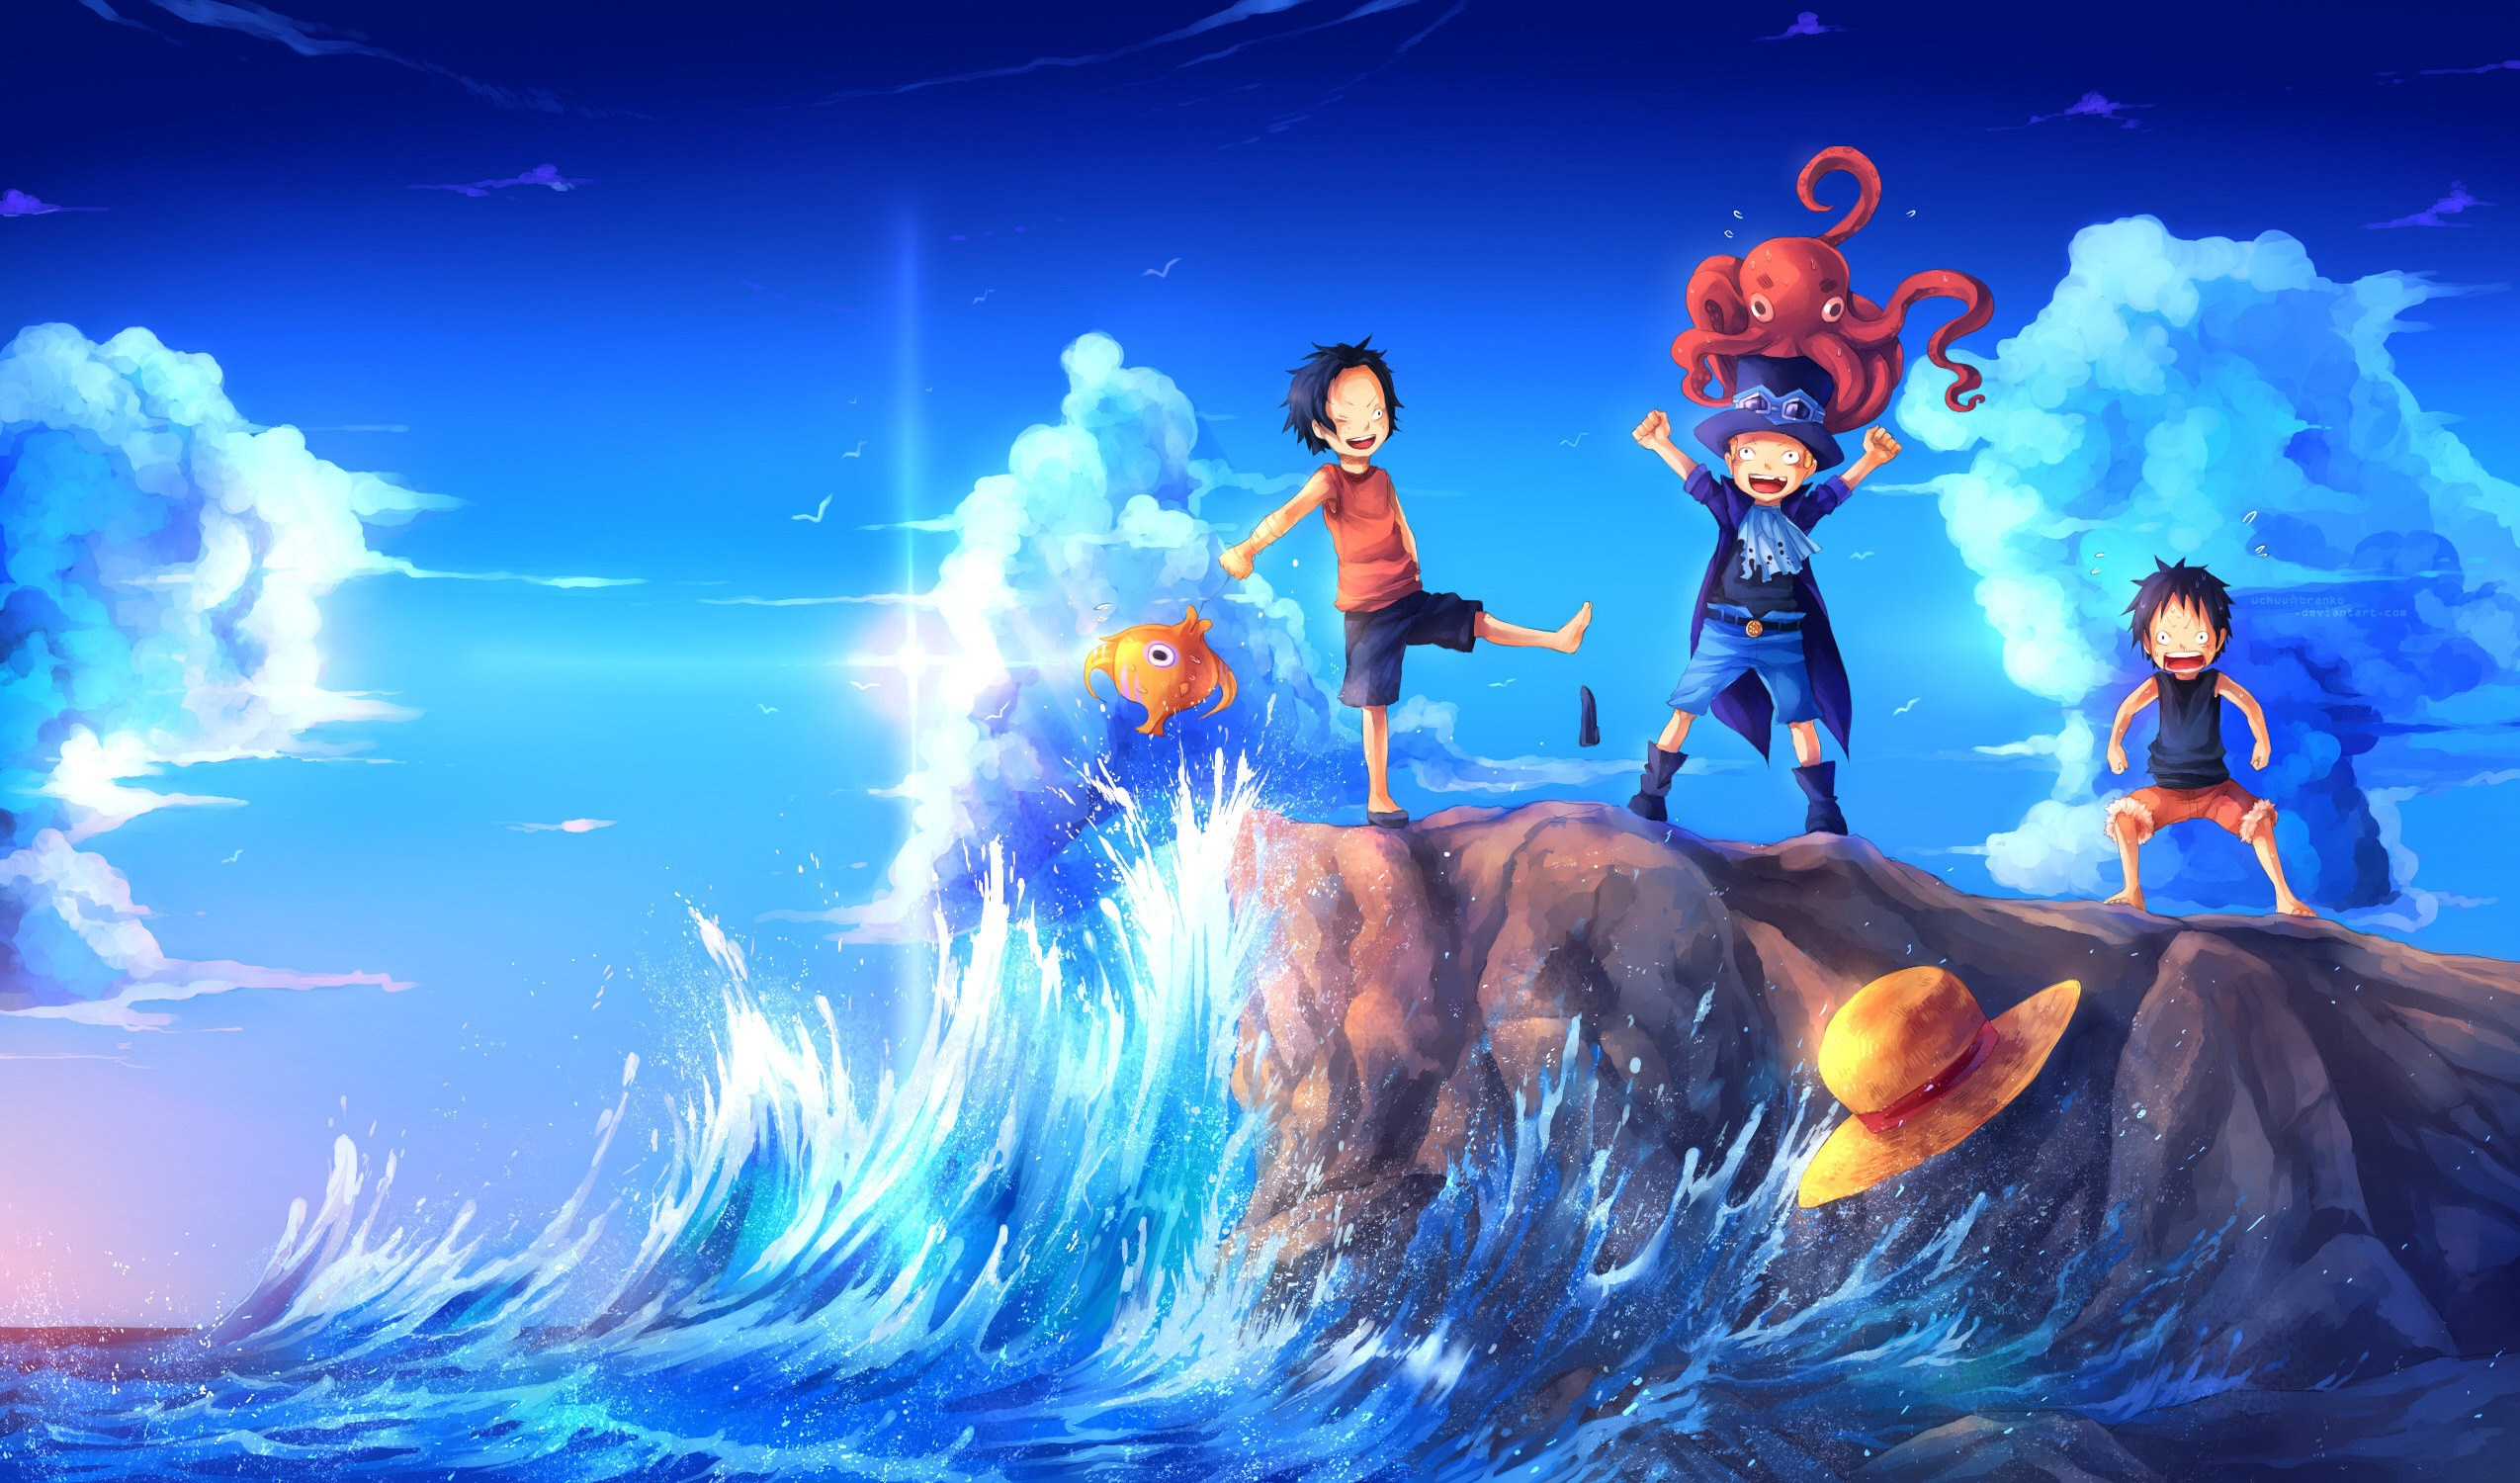 One Piece Luffy And Ace Wallpaper Background Is Cool Wallpapers